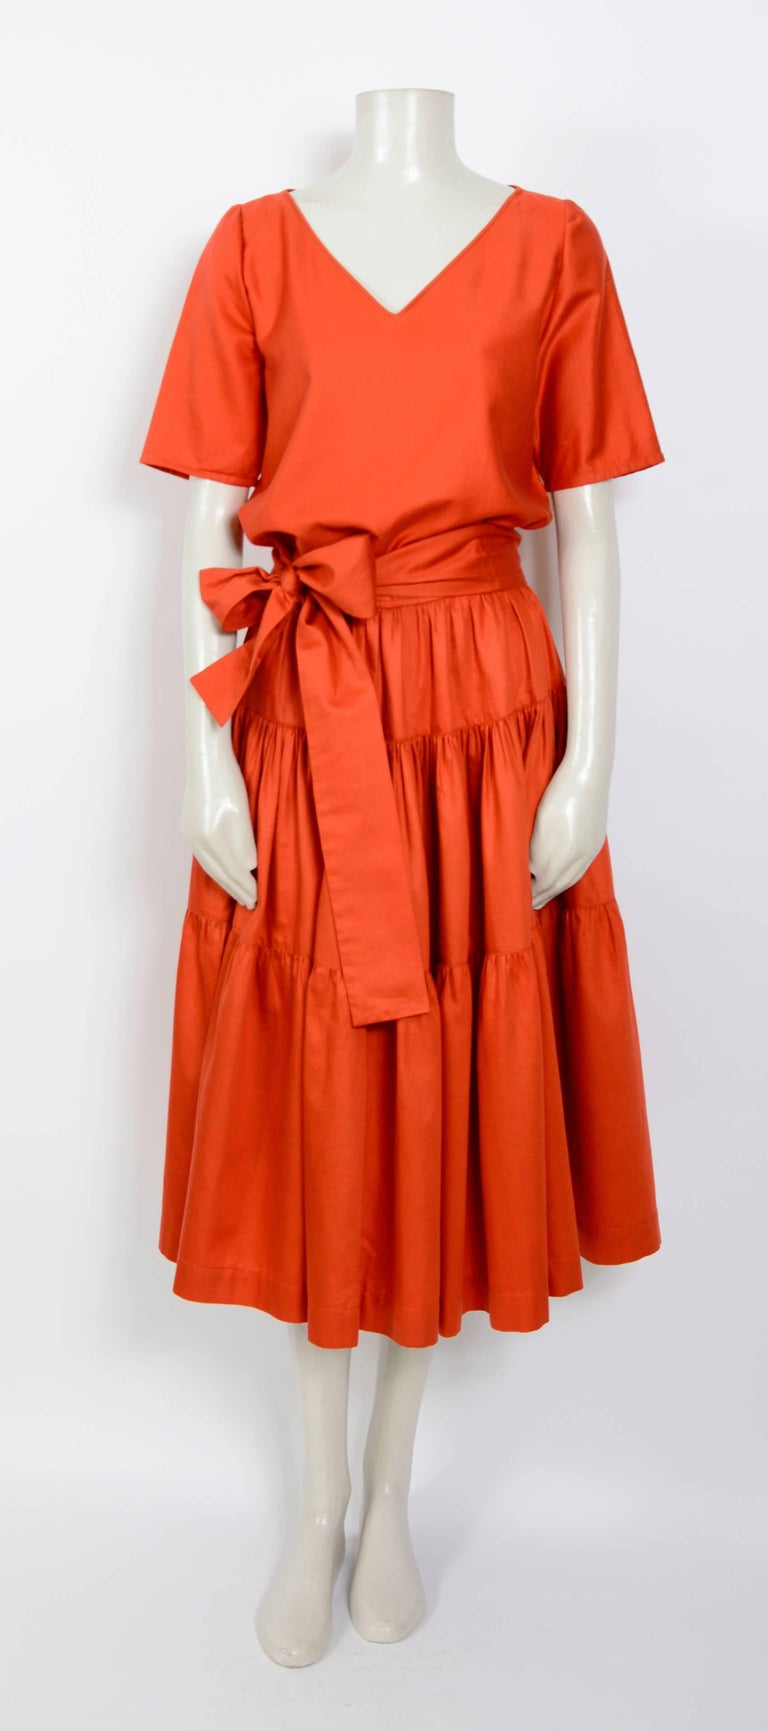 A fabulous 1960's top and skirt from YSL Rive Gauche in Redstone red polished cotton. The skirt has a fitted waistband, 3 gathered panels each widening towards the hem making it fuller and a wide tie belt. The top slips on over the head and the